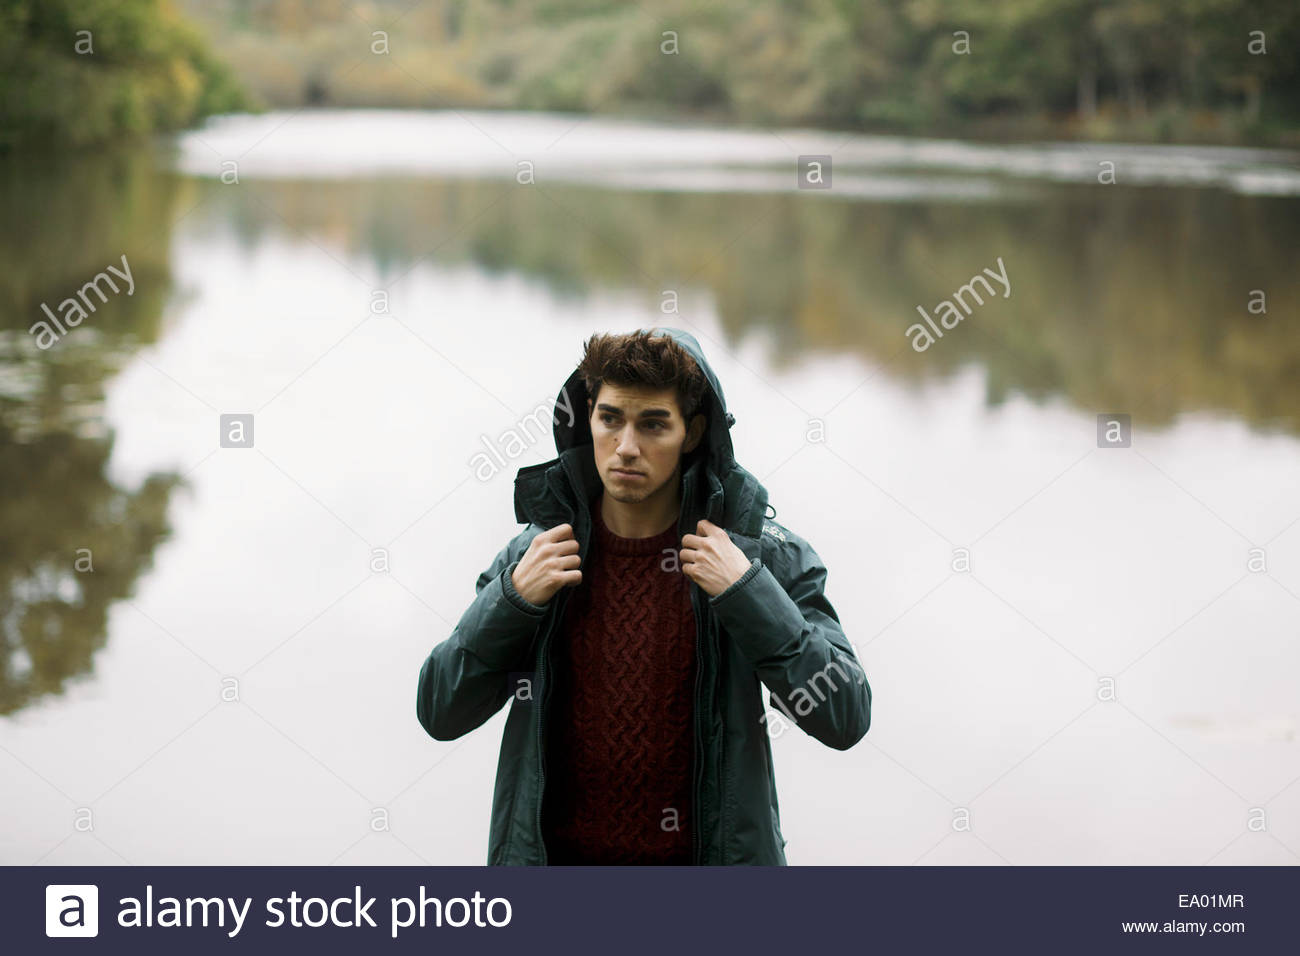 Young man standing looking away from riverbank - Stock Image